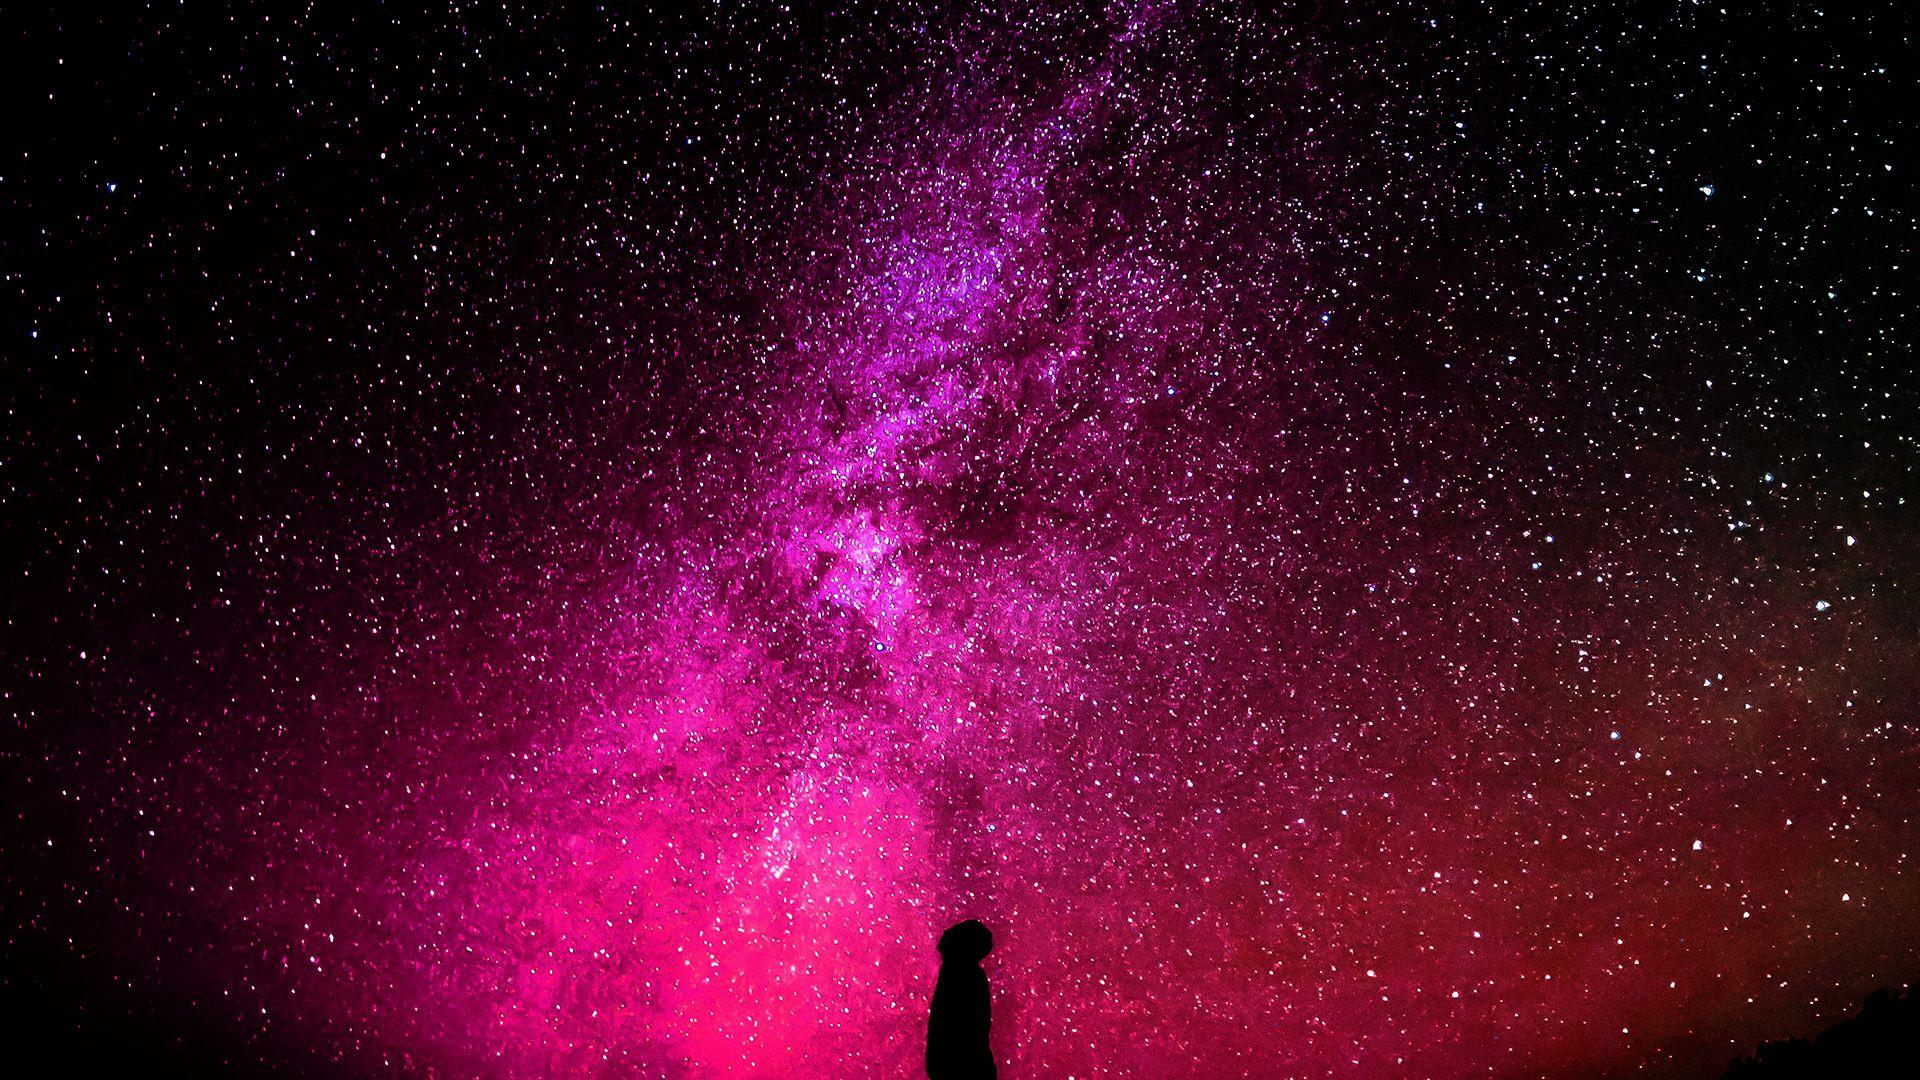 Pink Galaxy Wallpapers - Wallpaper Cave